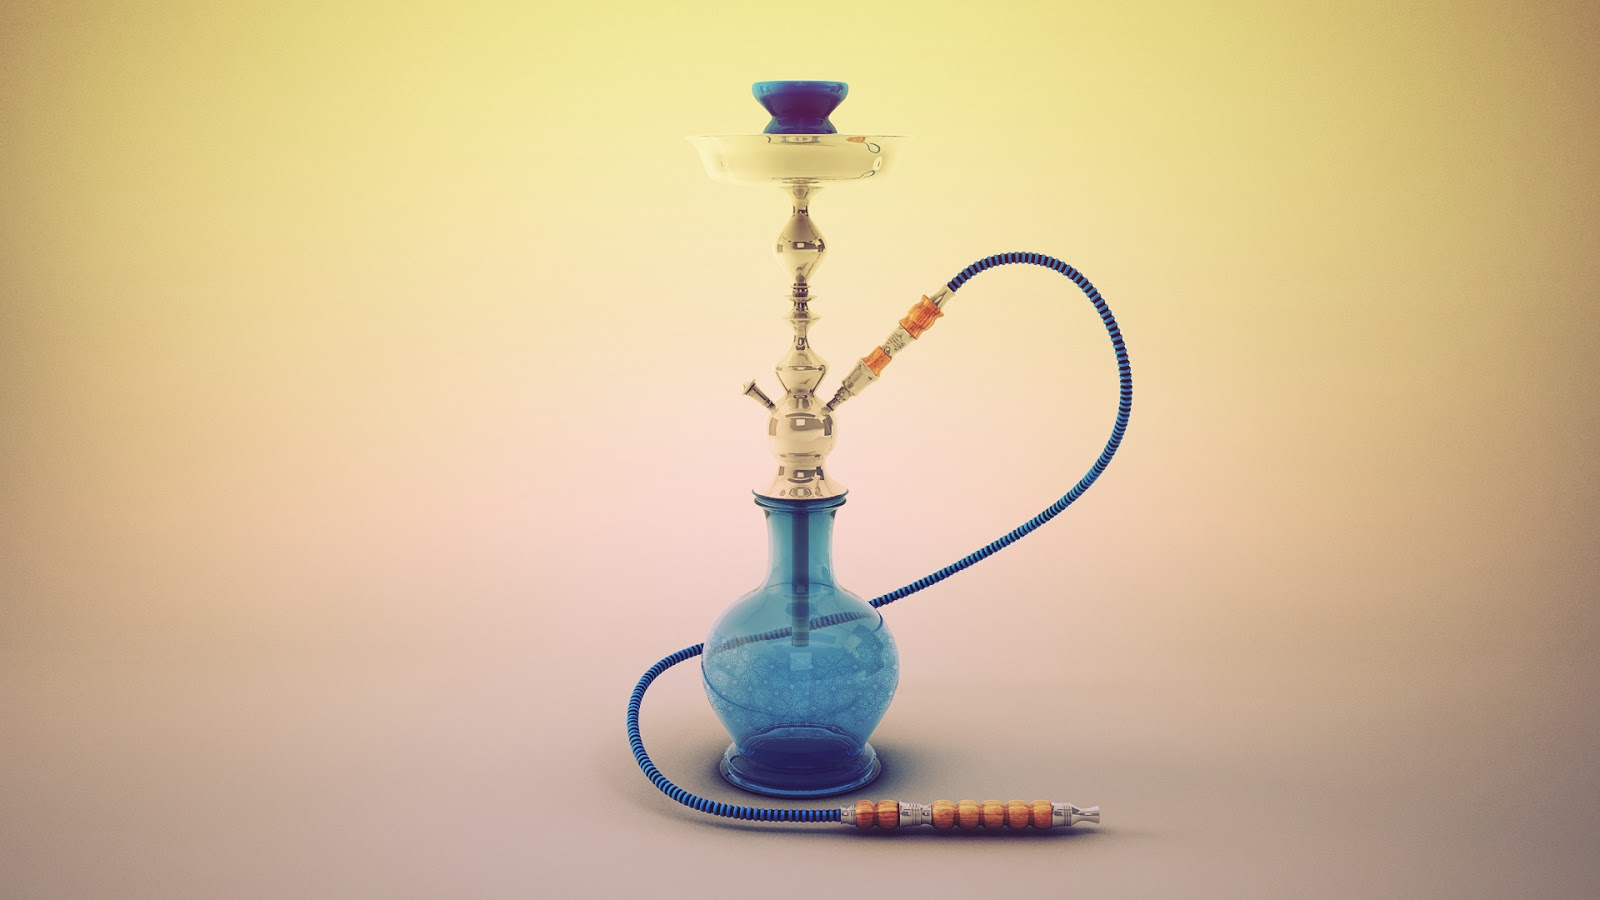 Hookah Wallpaper Full Hd Shisha Blow Wallpaper Dream Wallpapers